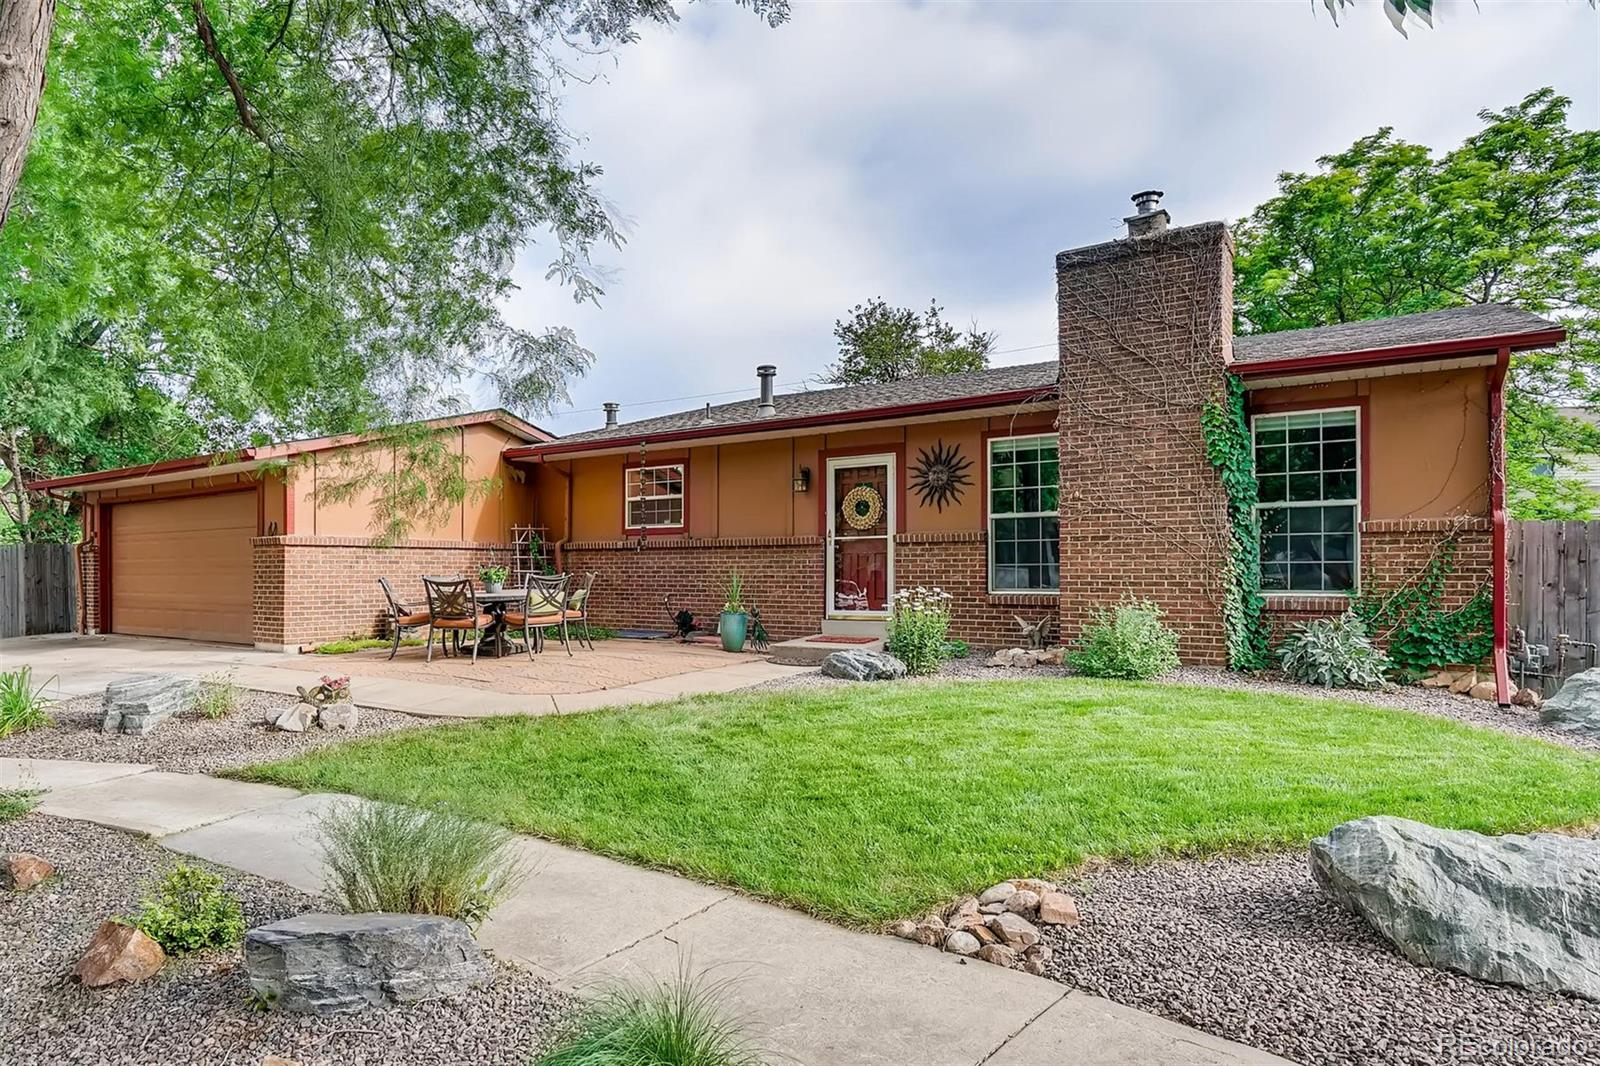 11146 W 68th Place Property Photo - Arvada, CO real estate listing